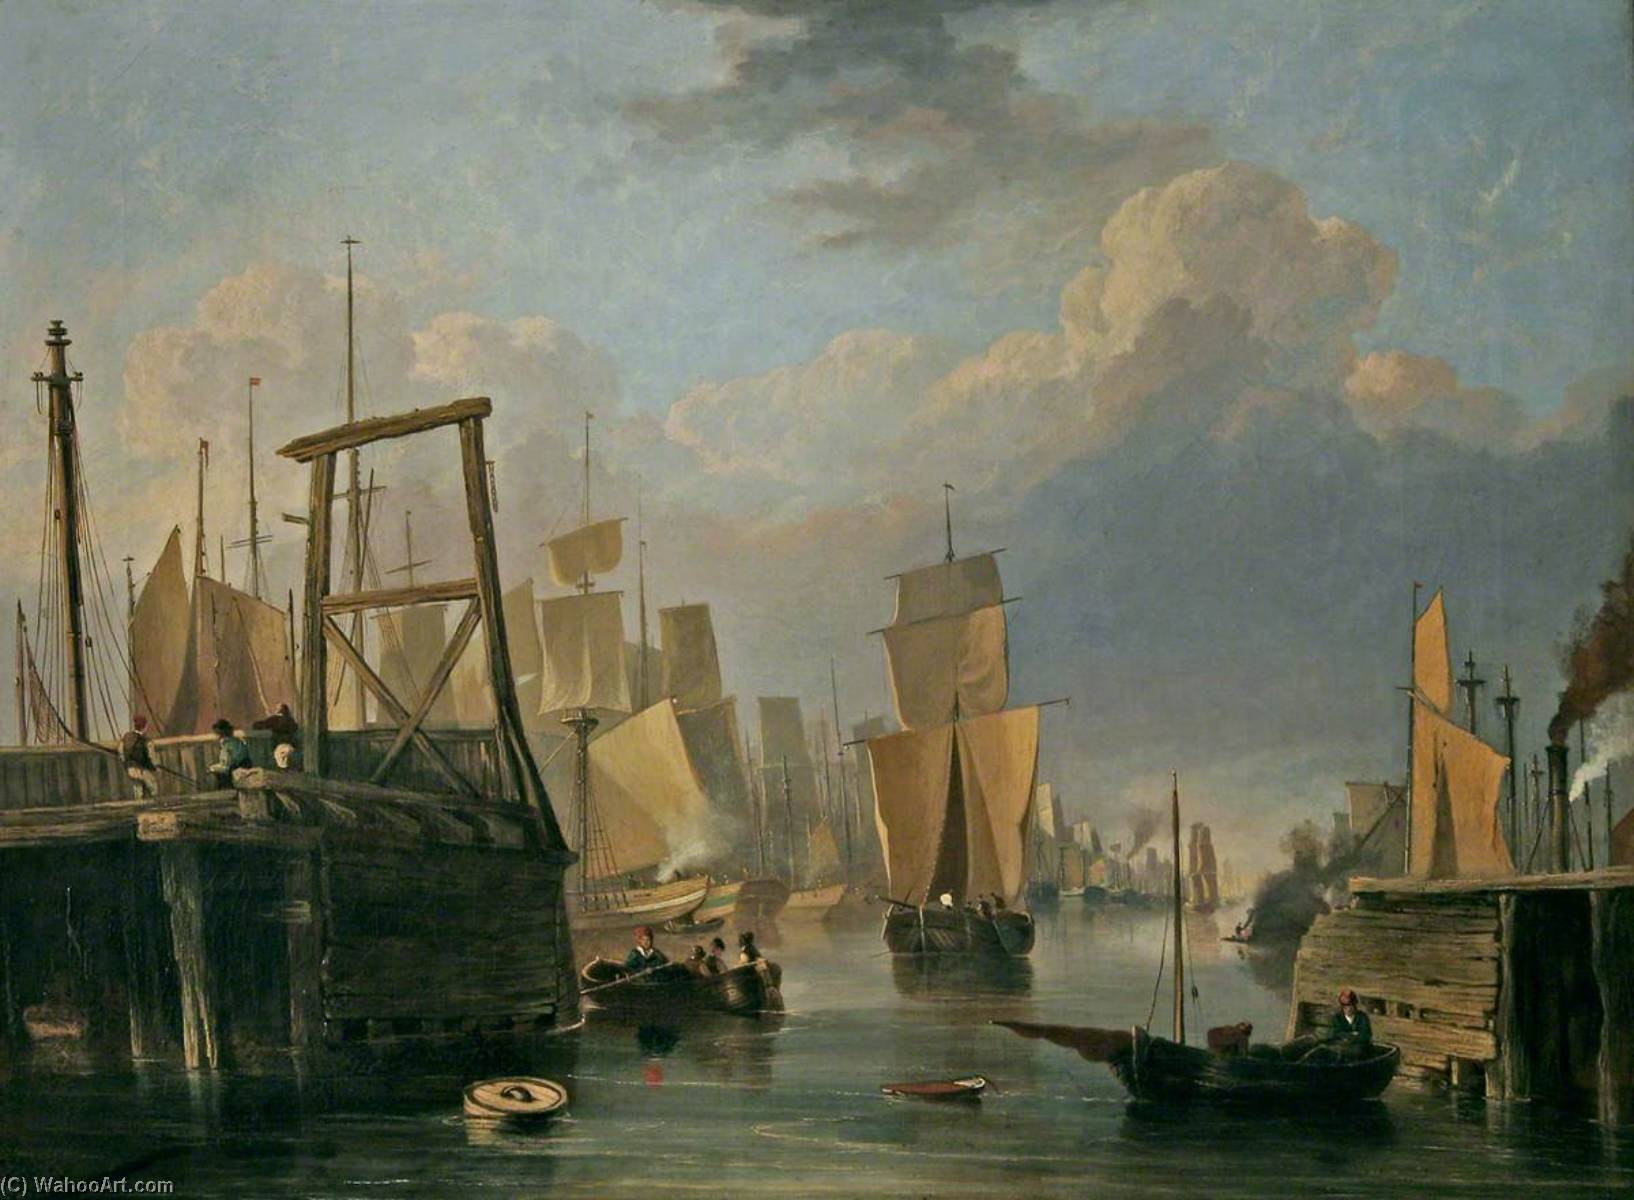 The Removal of Old Yarmouth Bridge, Norfolk, 1837 by John Berney Crome (1768-1821) | Oil Painting | ArtsDot.com